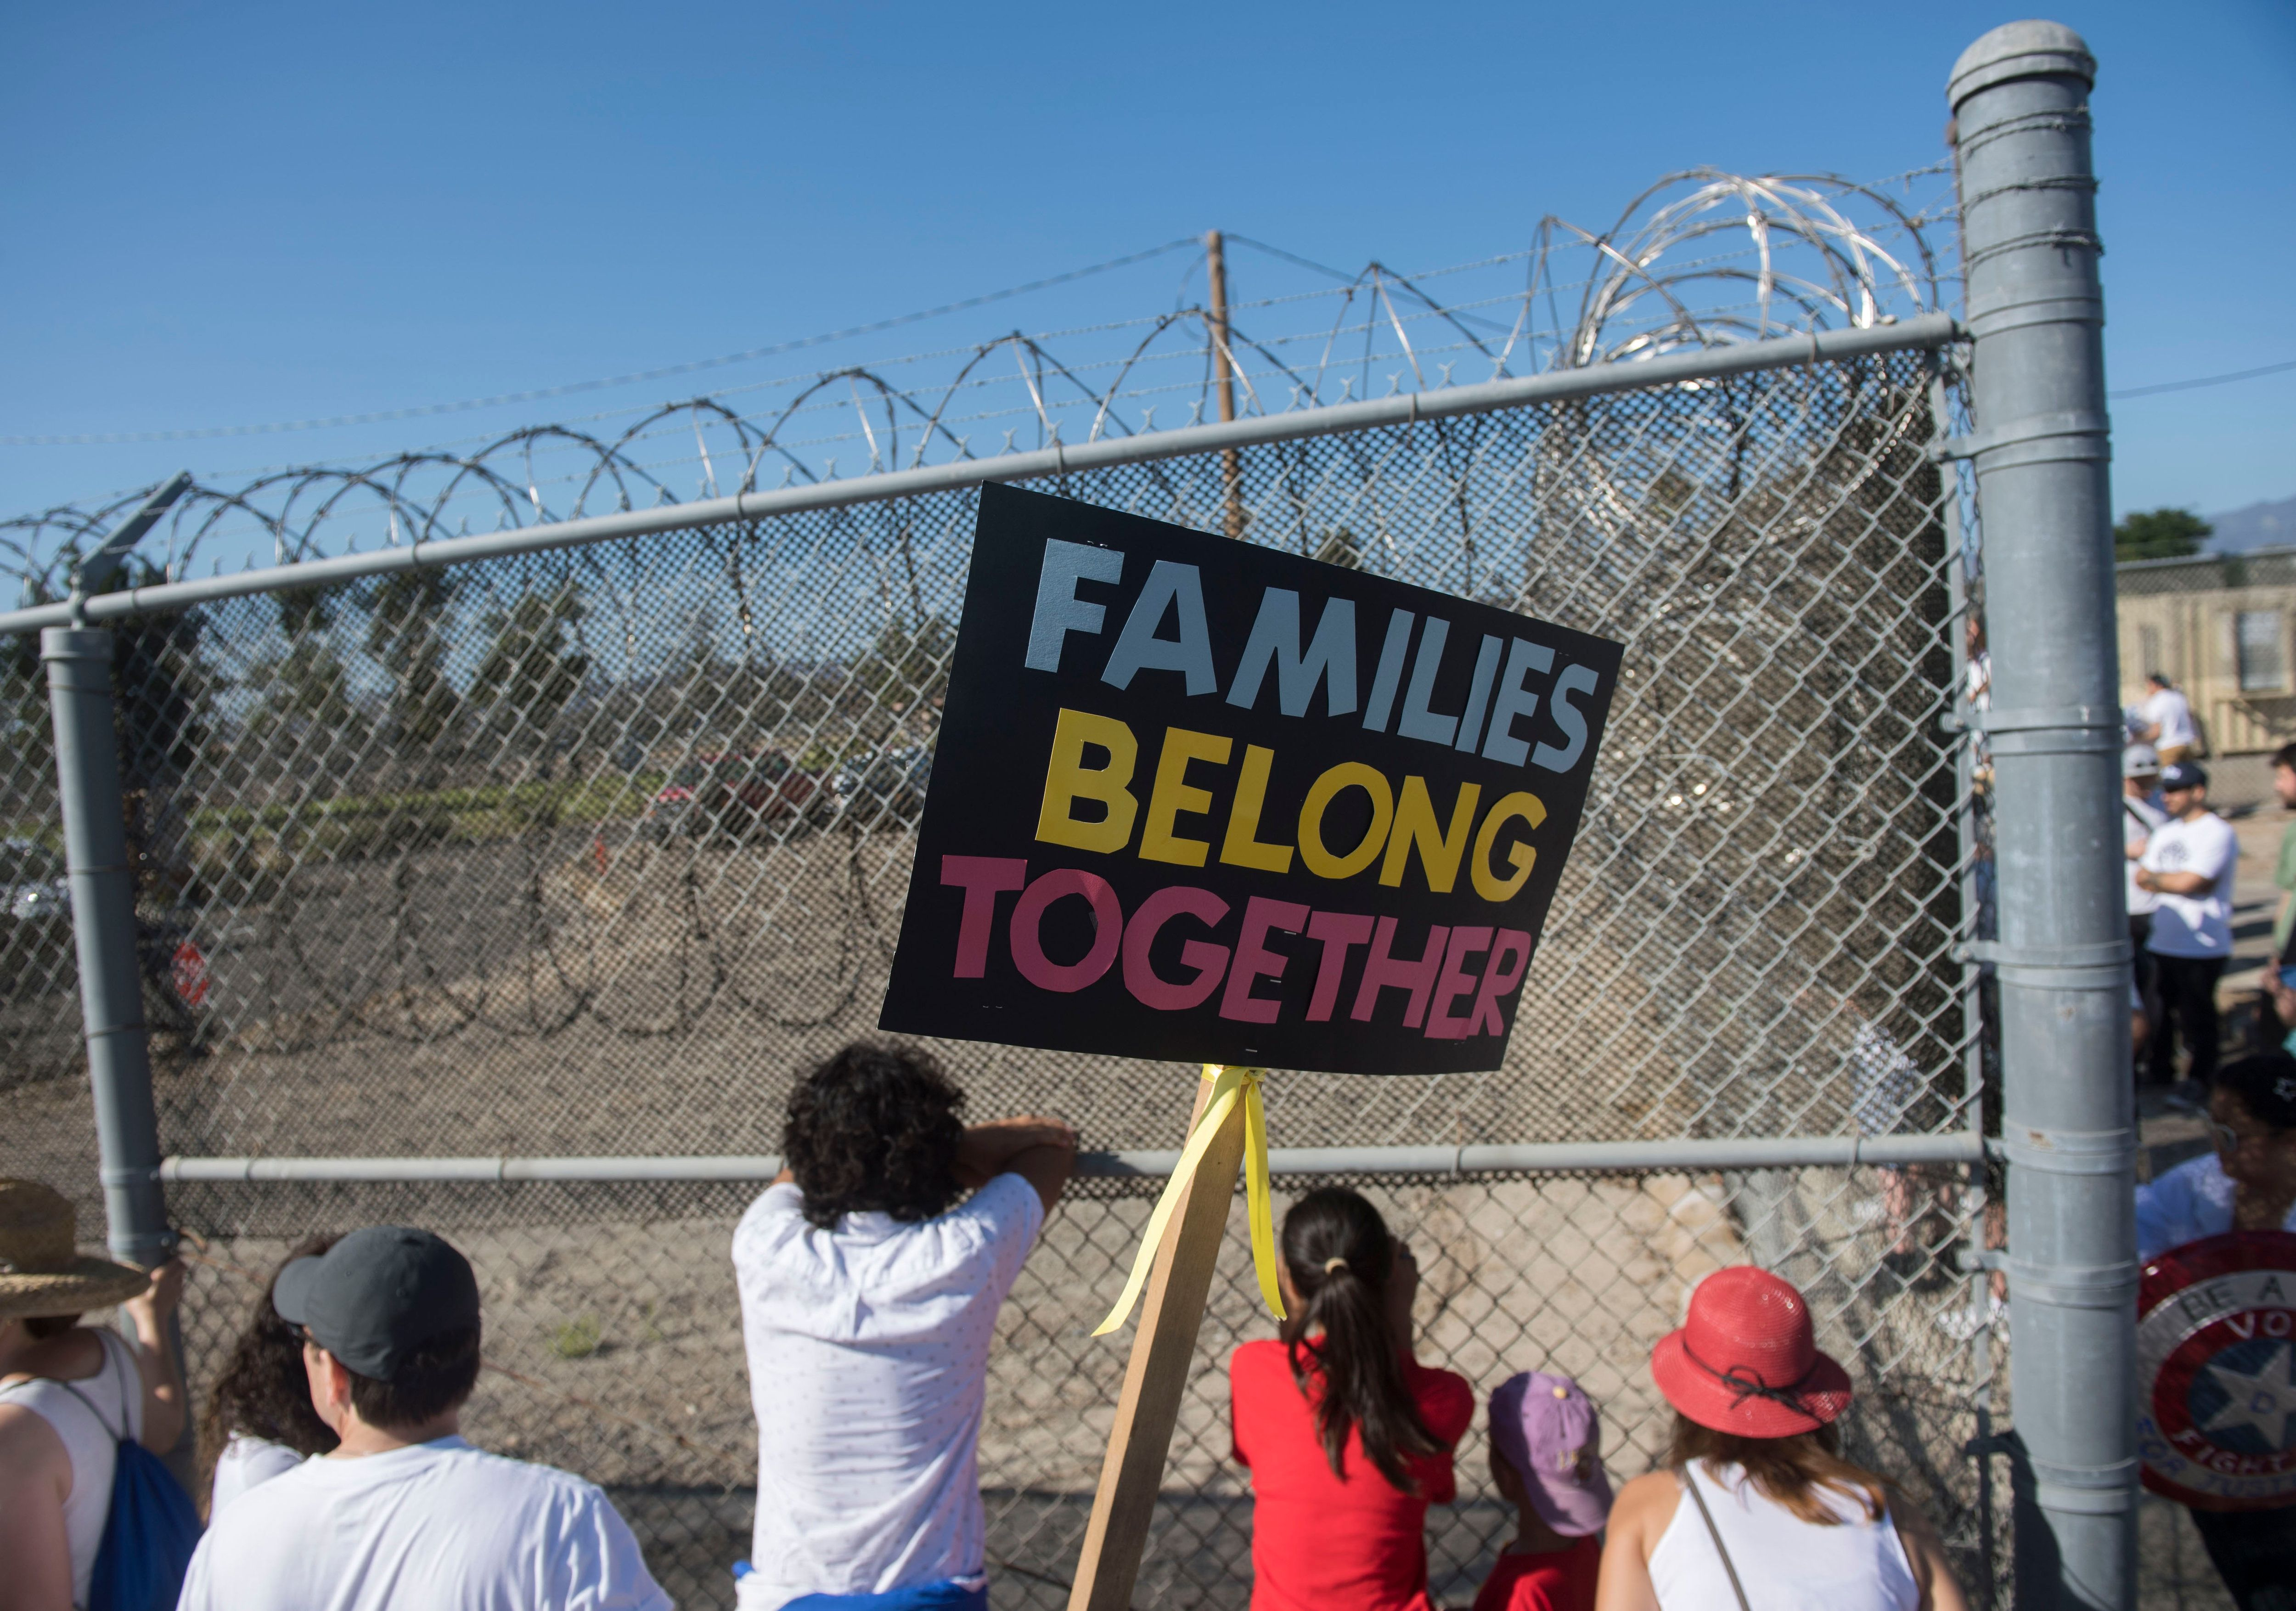 ANAHEIM, CA - JUNE 30: Protesters stand outside the James A. Musick Facility, a detention center that houses unauthorized immigrants, to protest President Trump's immigration policies and demand children be reunited with their families in Irvine on Saturday, June 30, 2018. (Photo by Kevin Sullivan/Orange County Register via Getty Images)